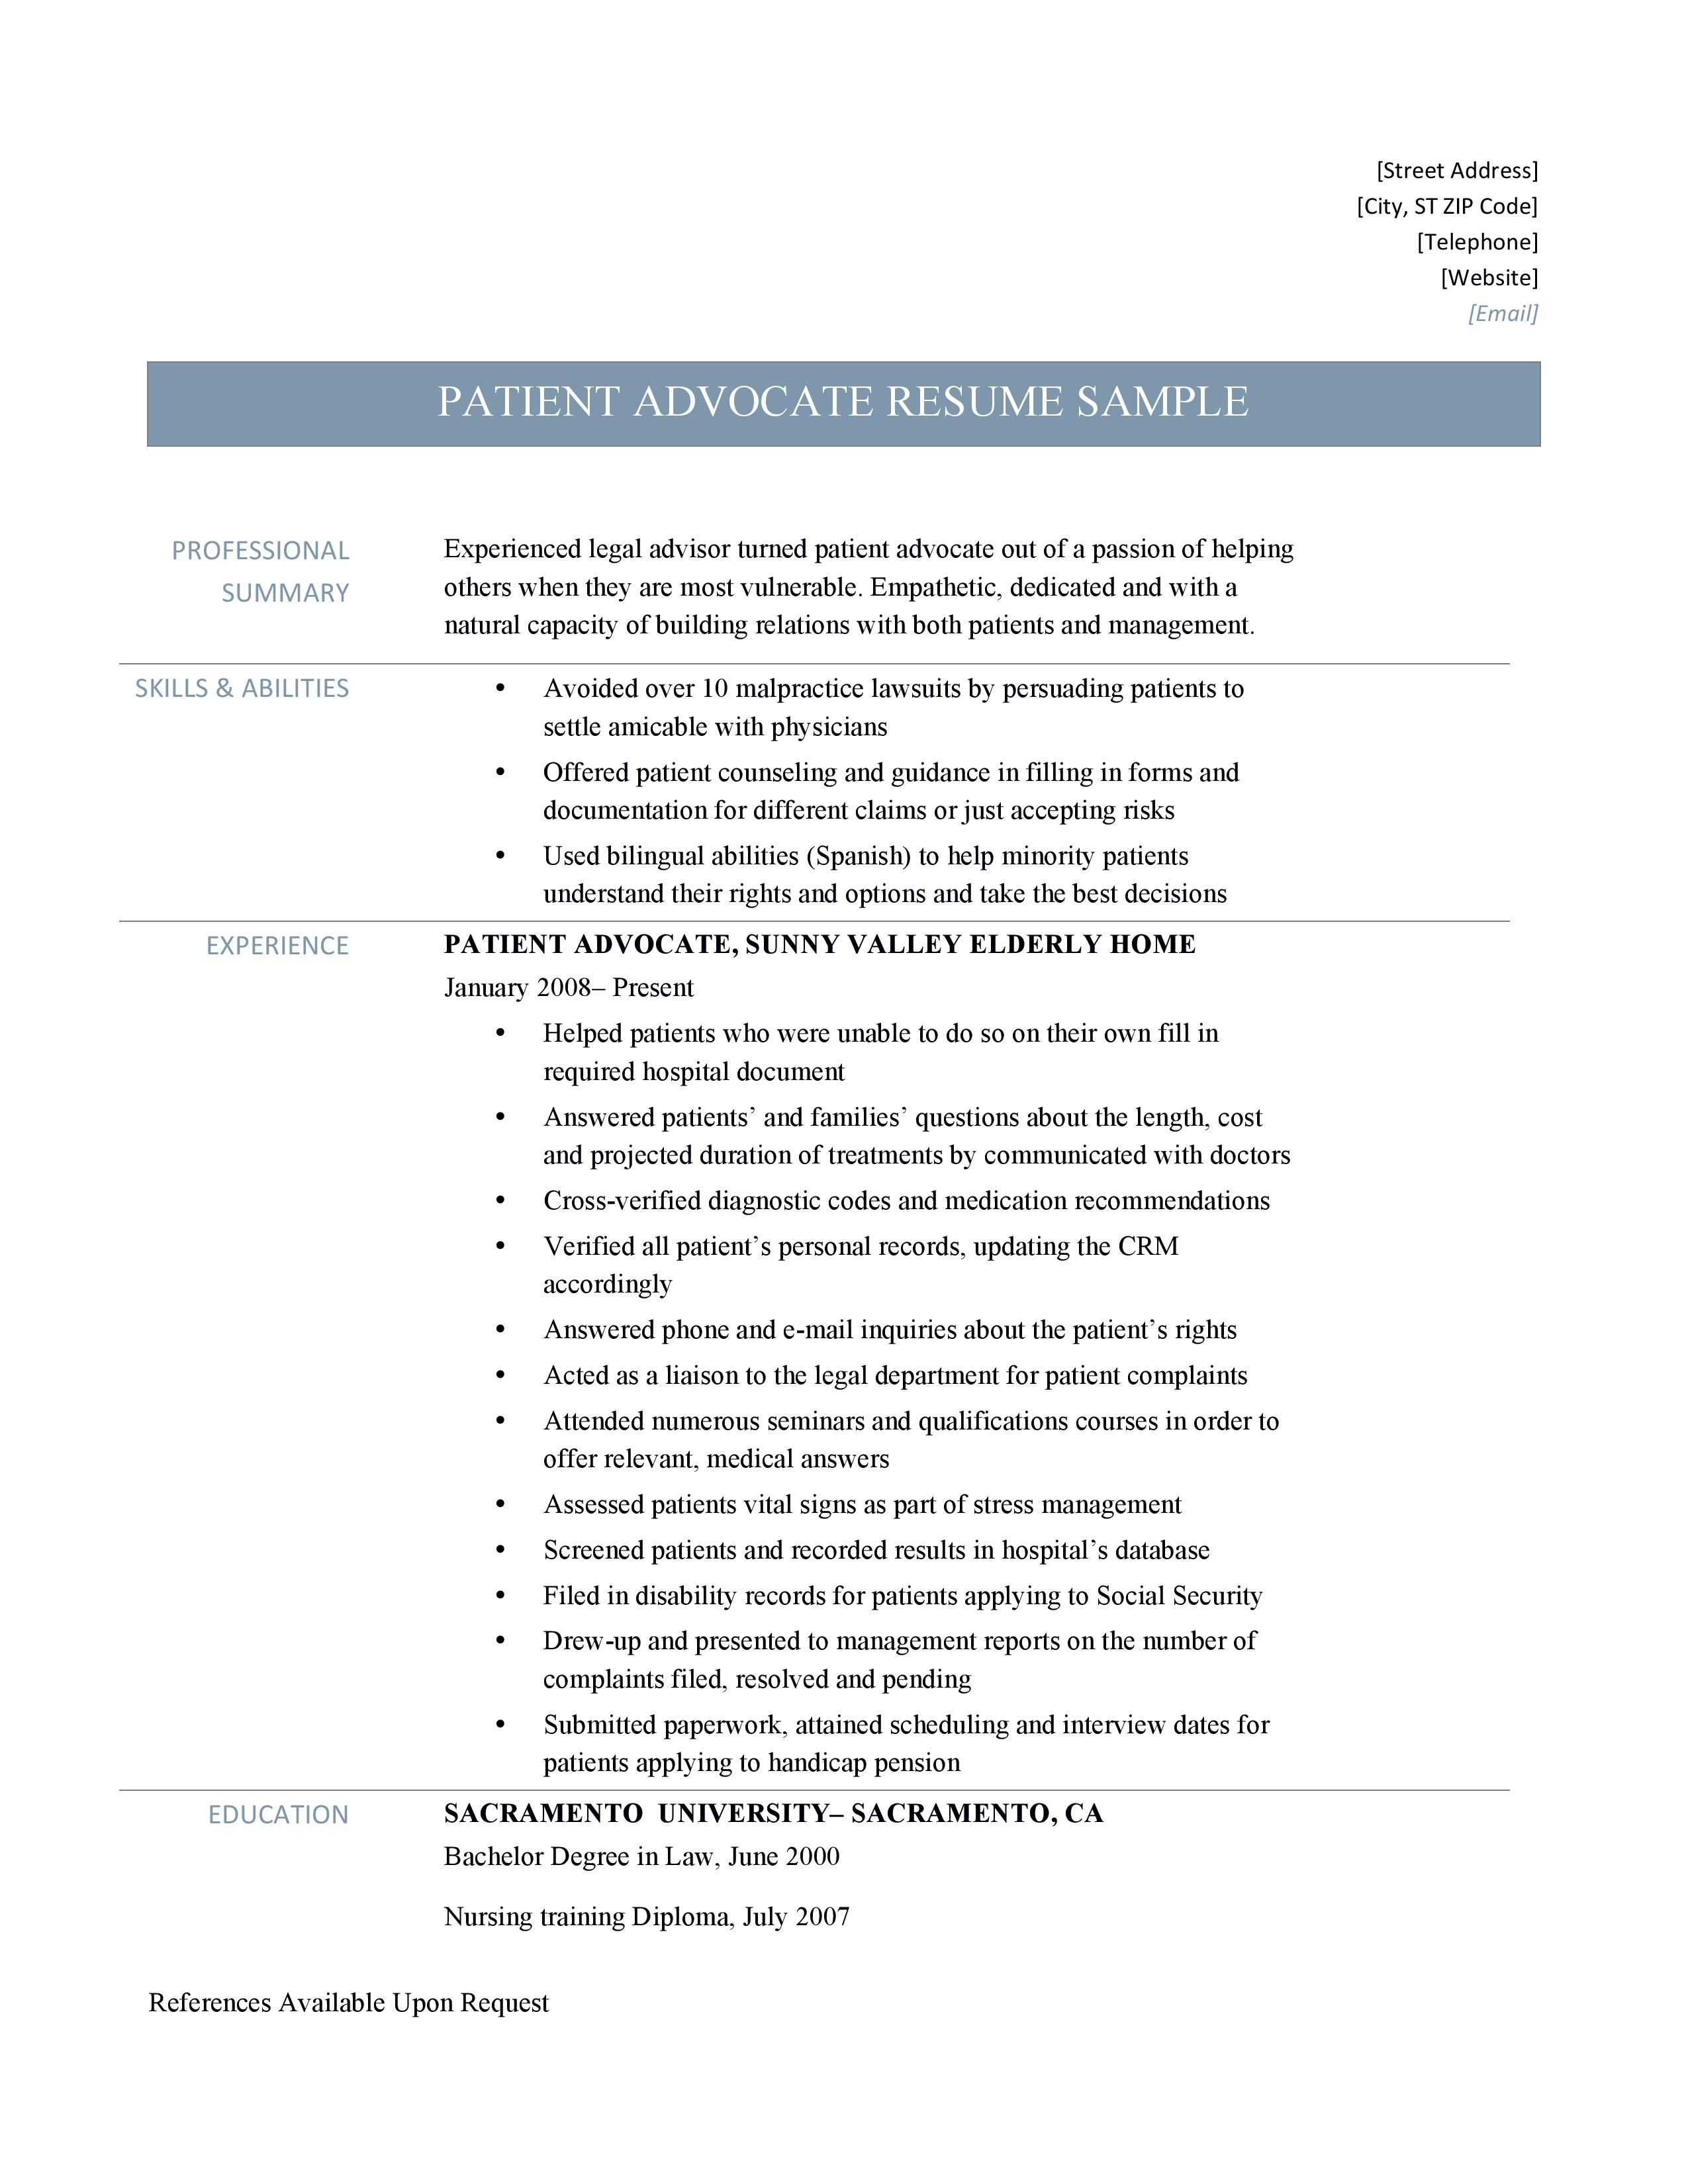 patient advocate resume samples tips and templates